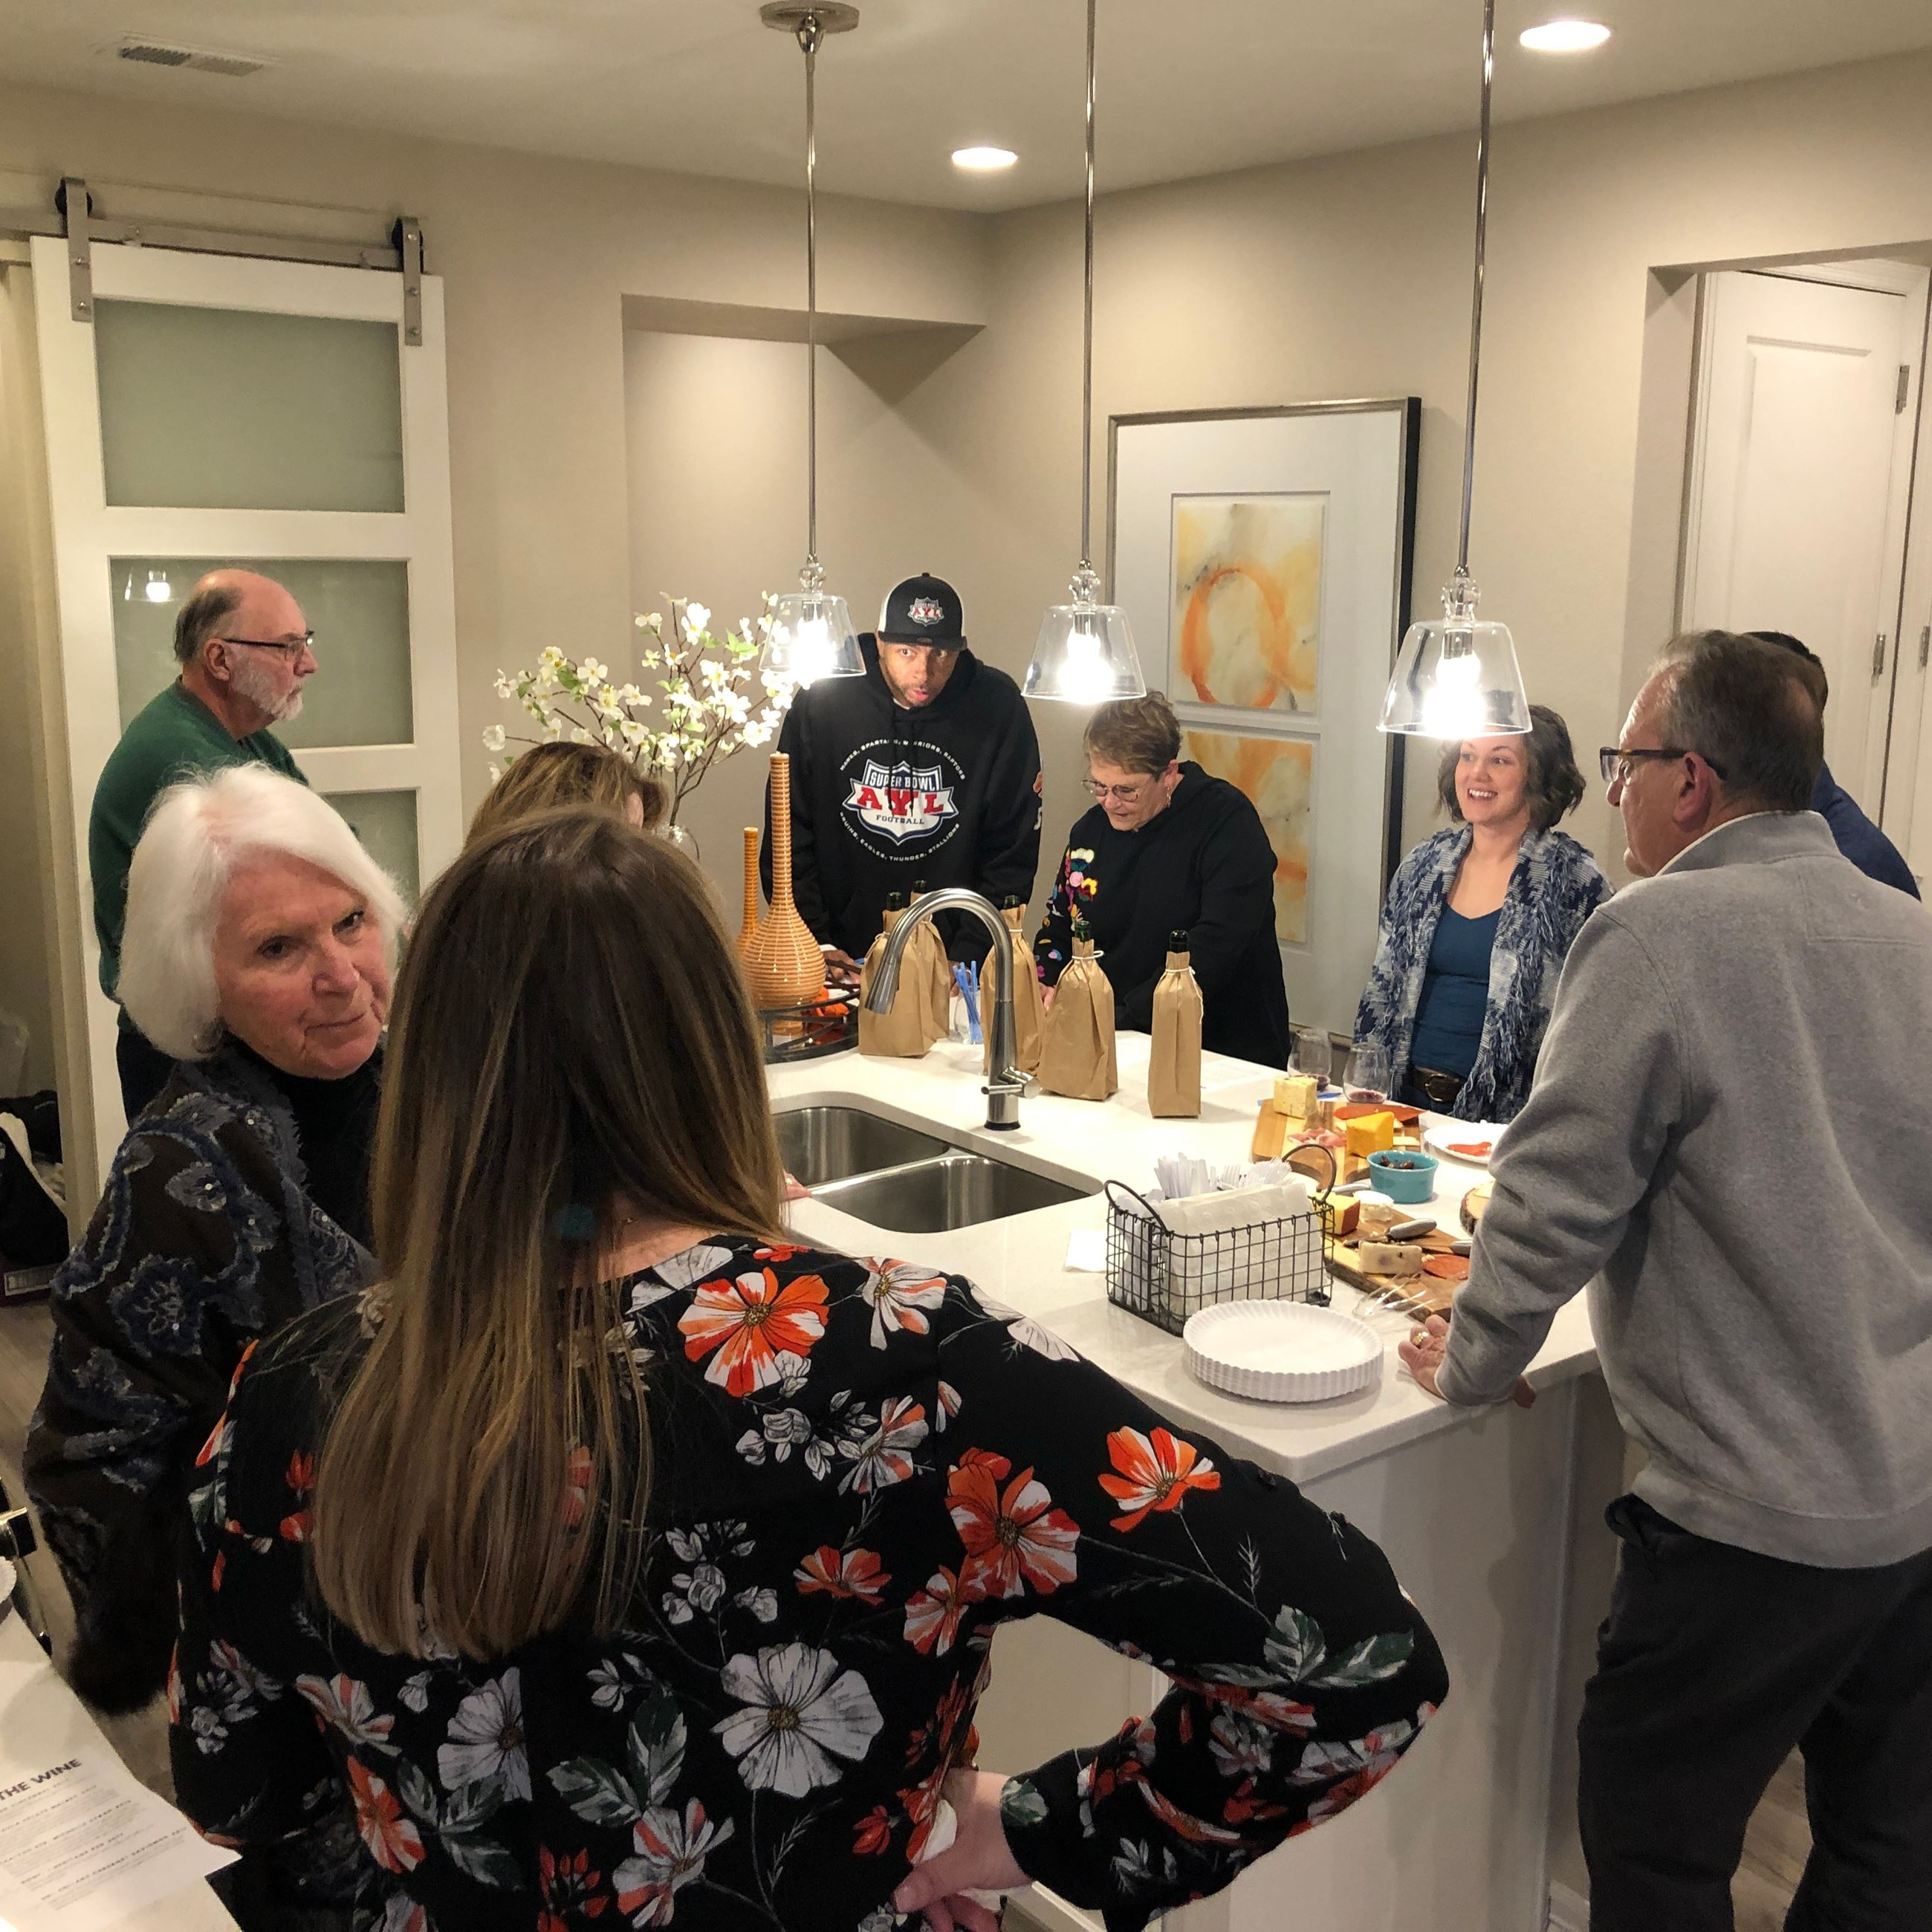 Homeowners at Blind Wine Tasting Event